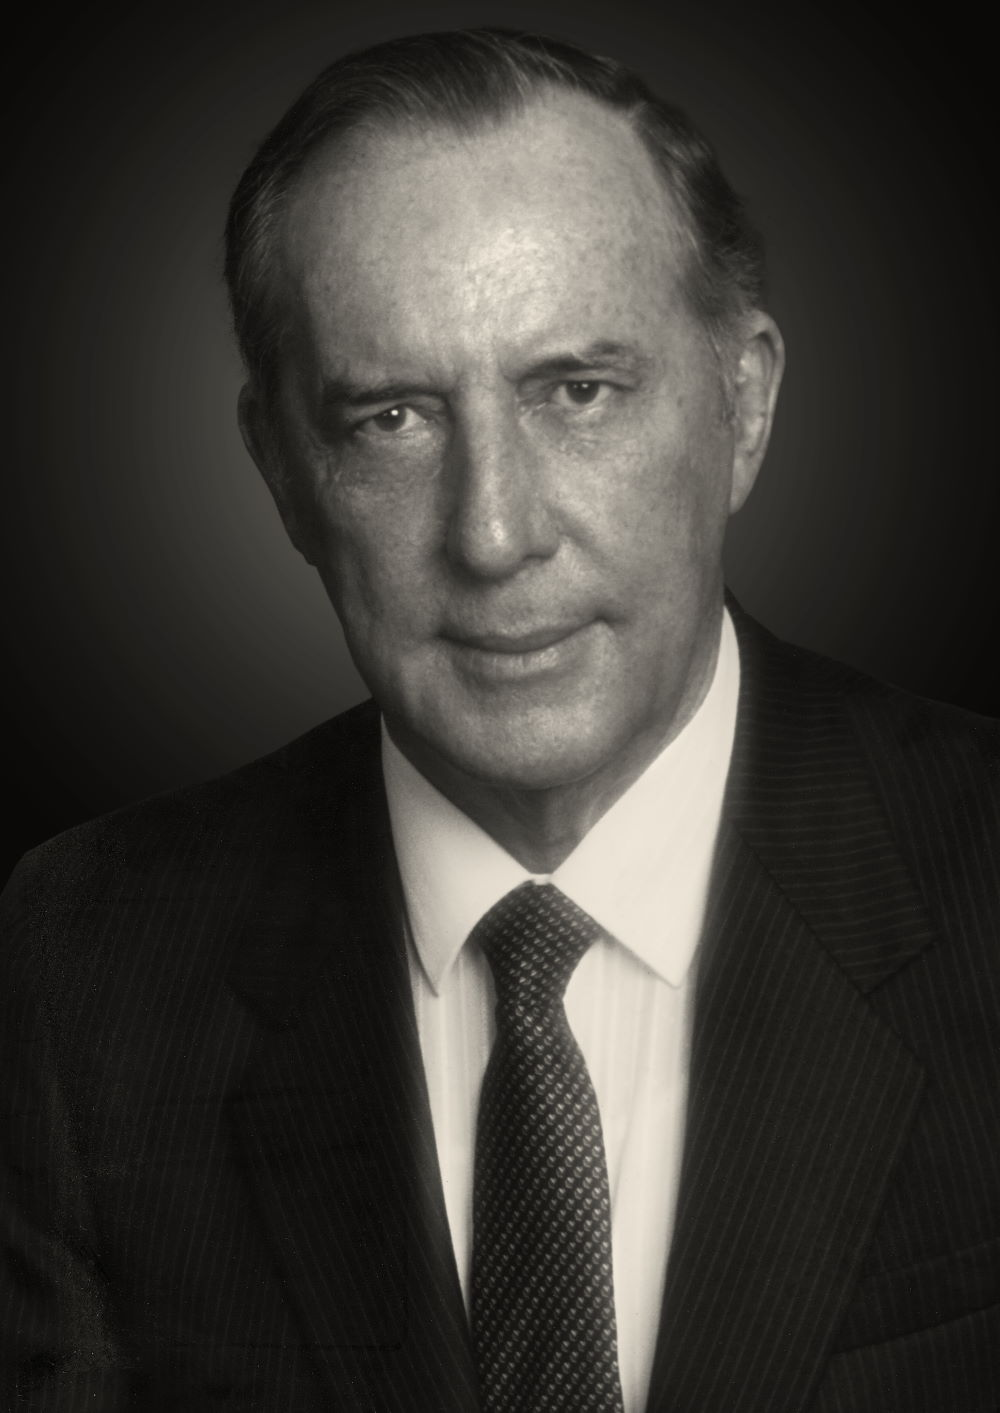 A black and white portrait of Derek Prince wearing a suit and tie.